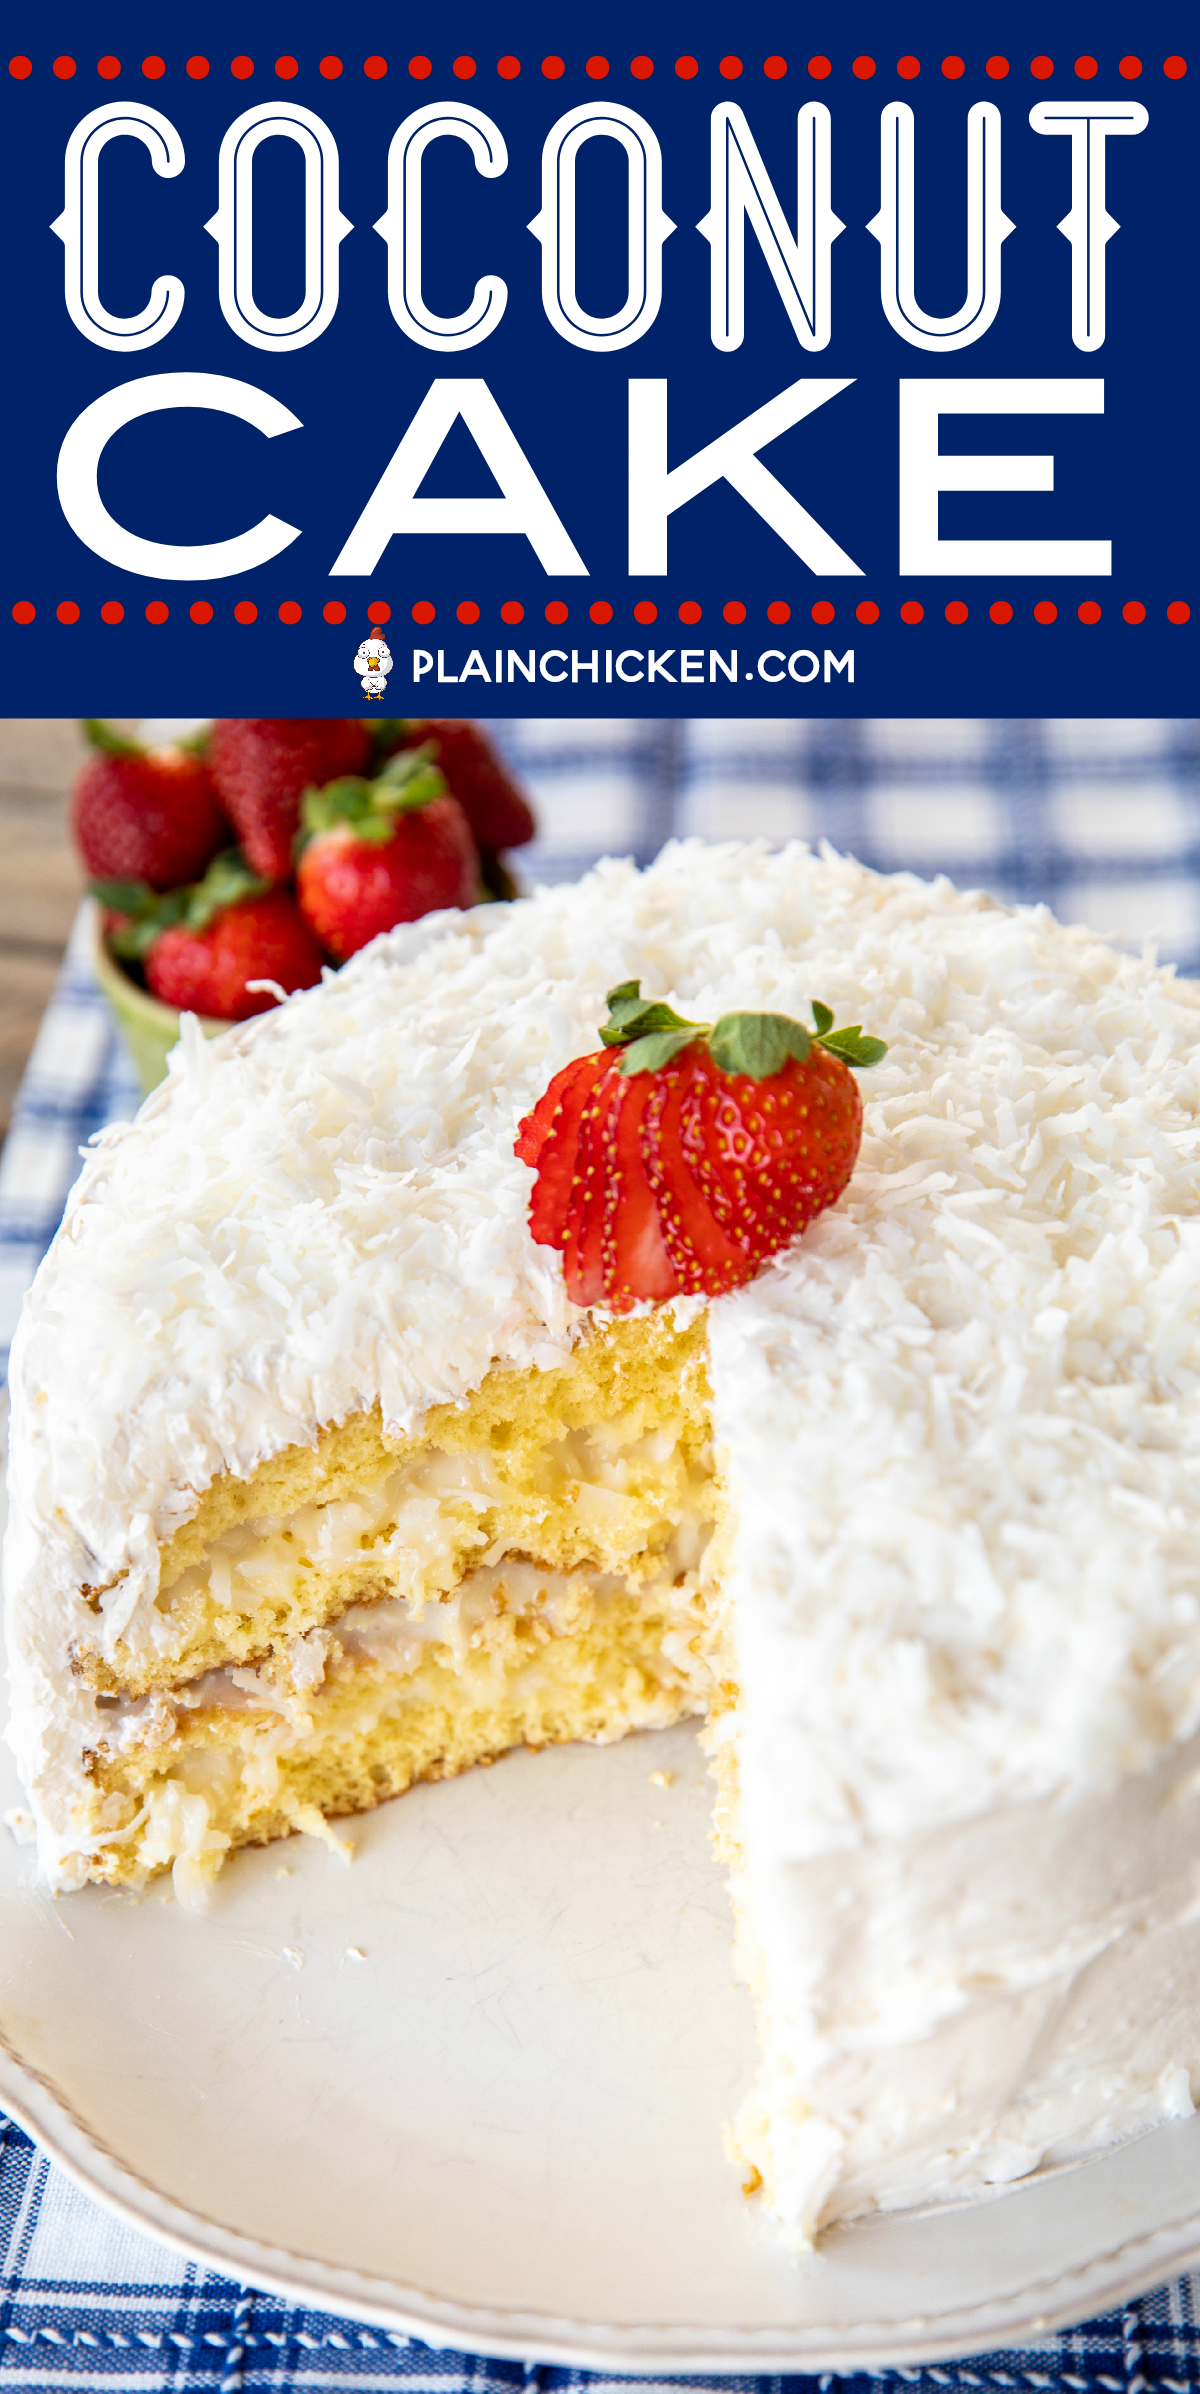 Coconut Cake The Sour Cream Cool Whip Frosting Makes This Cake It Is Amazing So Easy To Mak Sour Cream Coconut Cake Coconut Cake Recipe Coconut Cake Easy